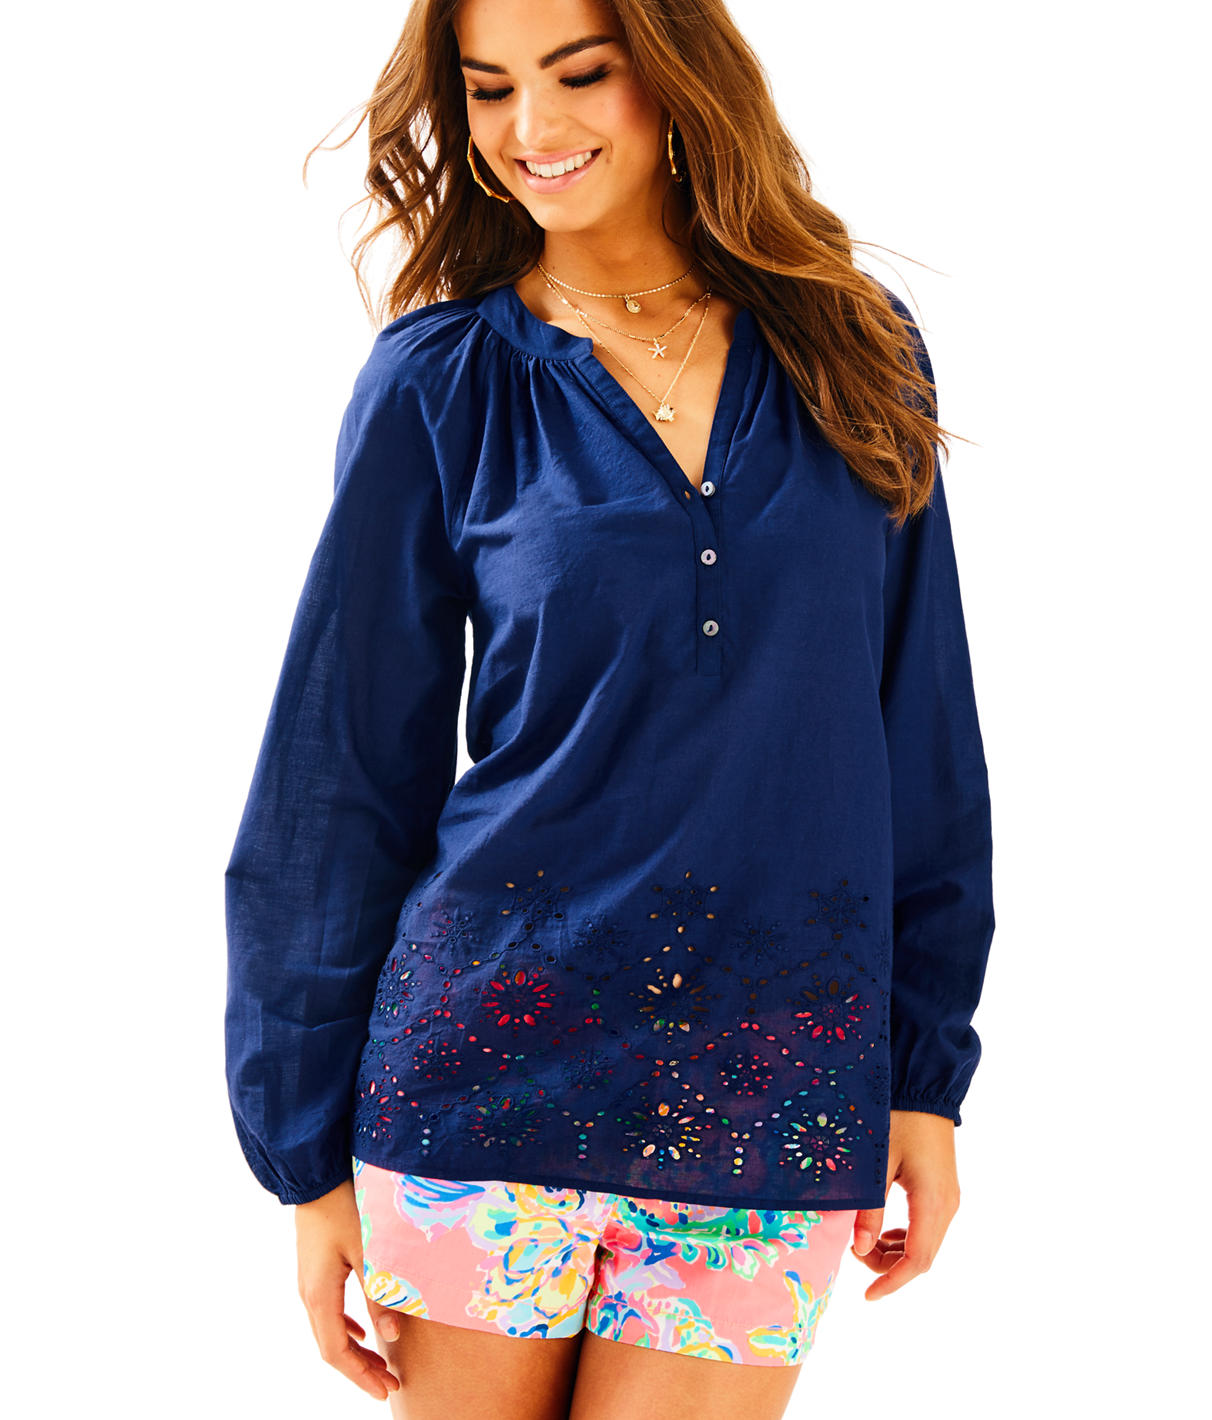 Lilly Pulitzer Elsa Top